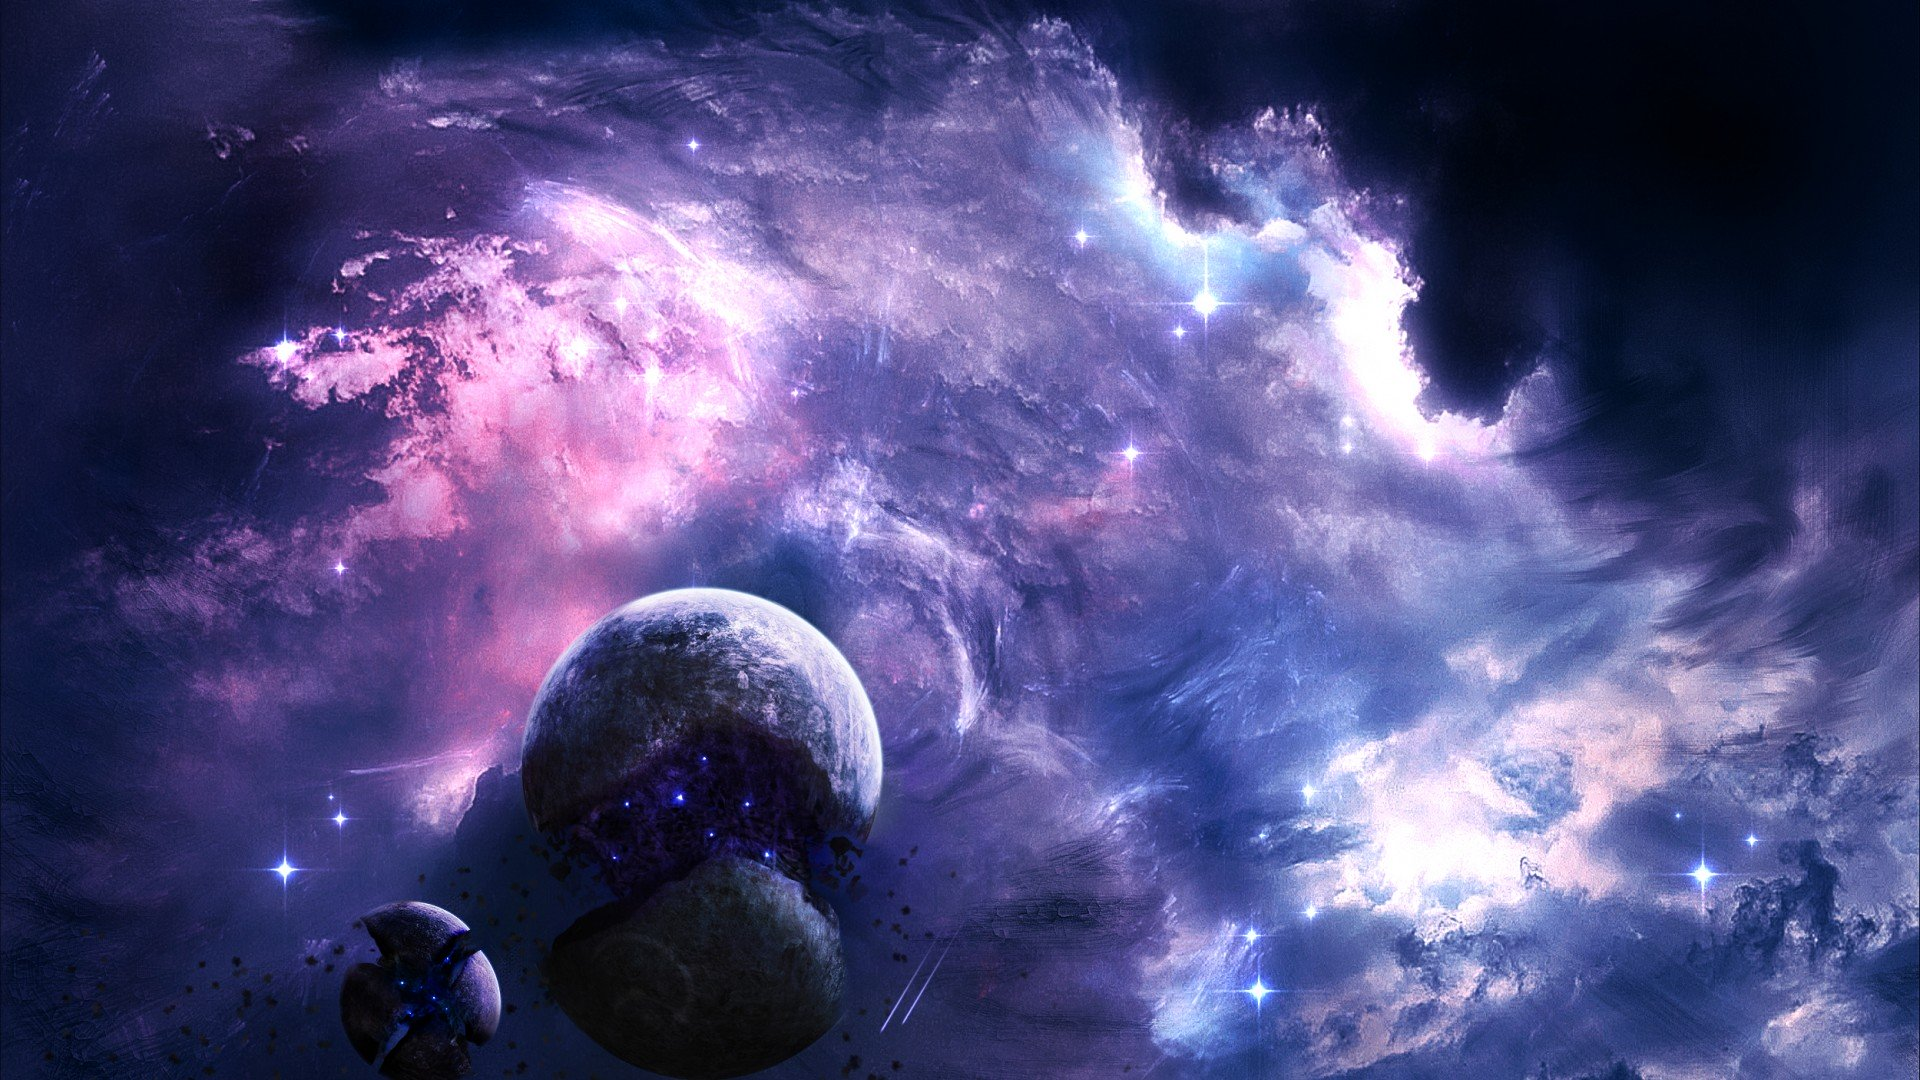 space wallpapers 11 1920x1080